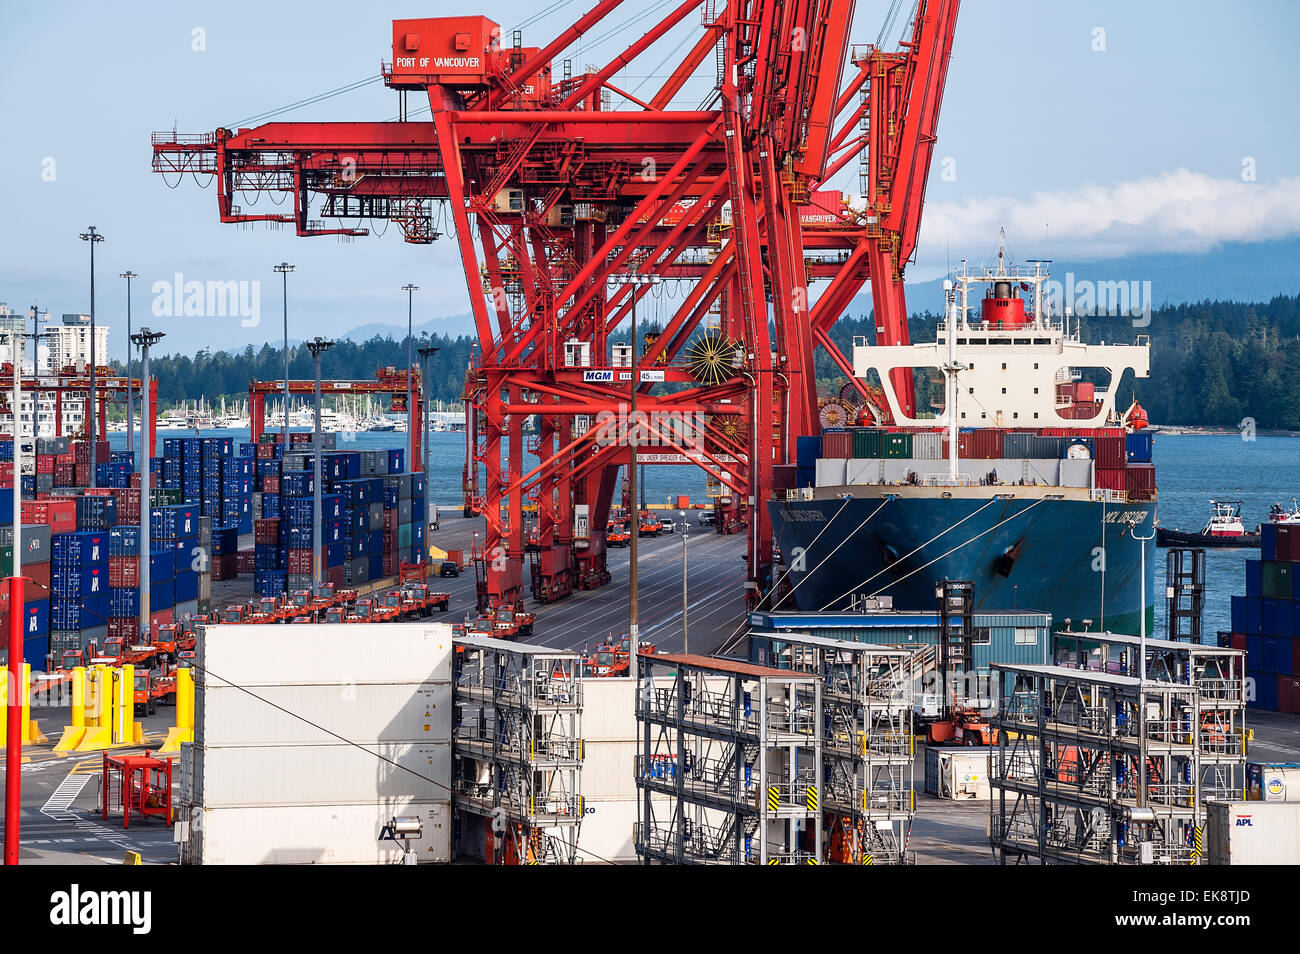 Docked cargo ship being loaded with  containers for export, Vancouver, British Columbia, Canada - Stock Image